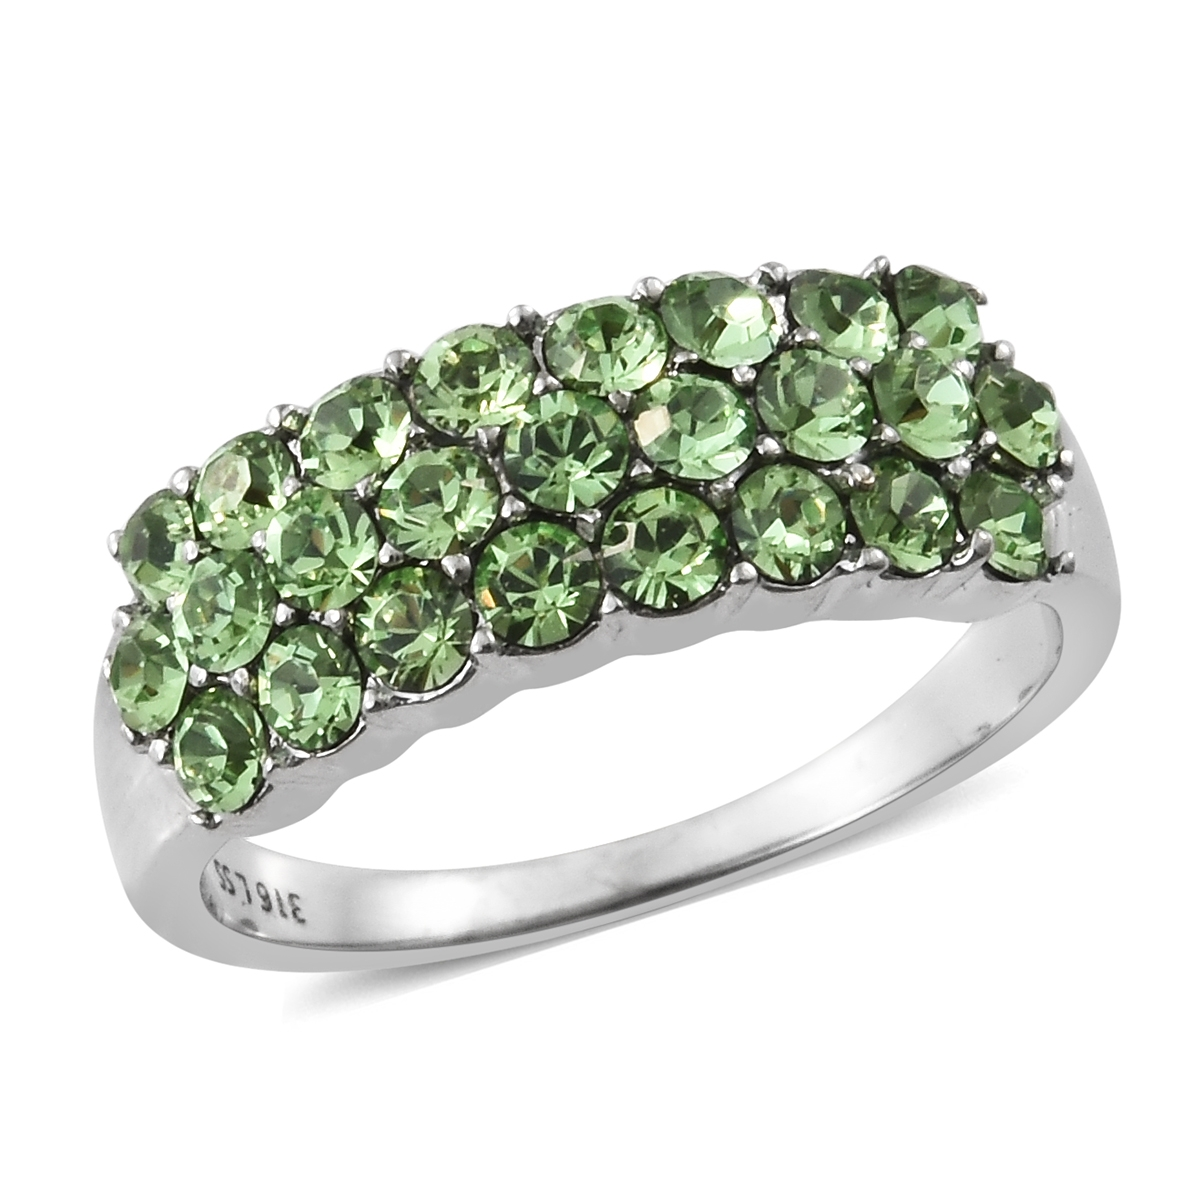 197bc3617e8c Stainless Steel Cluster Ring (Size 5.0) Made with SWAROVSKI Peridot Crystal